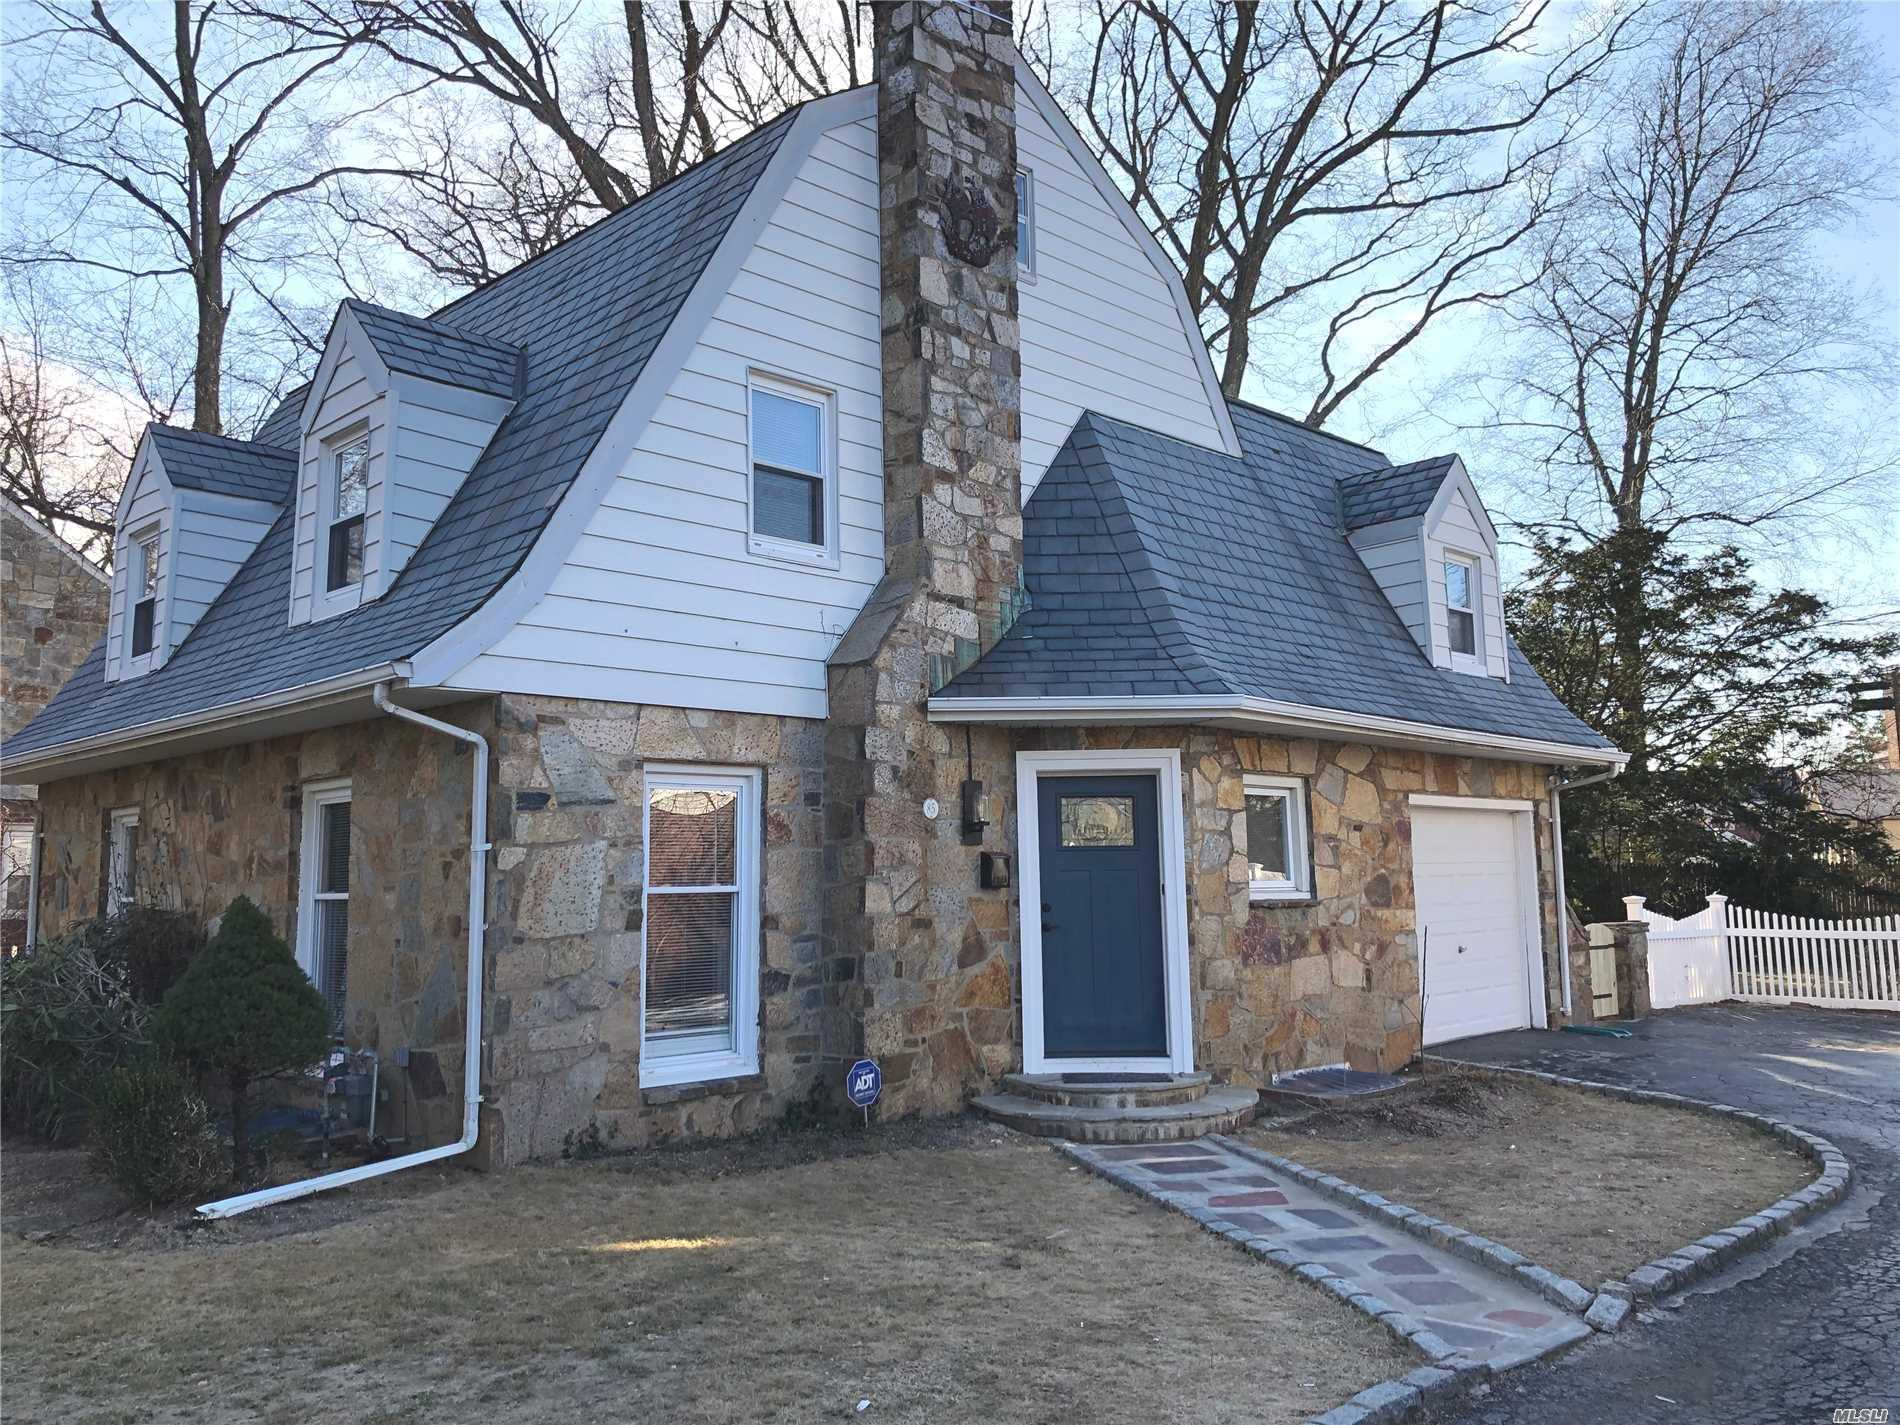 Large, Renovated , Open Floor Plan, 2027 Sq. Feet Colonial In A Beautiful Sterns Park Area Of Freeport.3/4 Bedroom, 2 New Full Bath, New Kitchen W Ss Appliances, Full Finished Basement, Large Bedrooms, Master Bedroom W/3 Closets. Heating System Only 6 Years Old. To Much To List. Come And See This Beautiful Colonial In Park Like Setting.